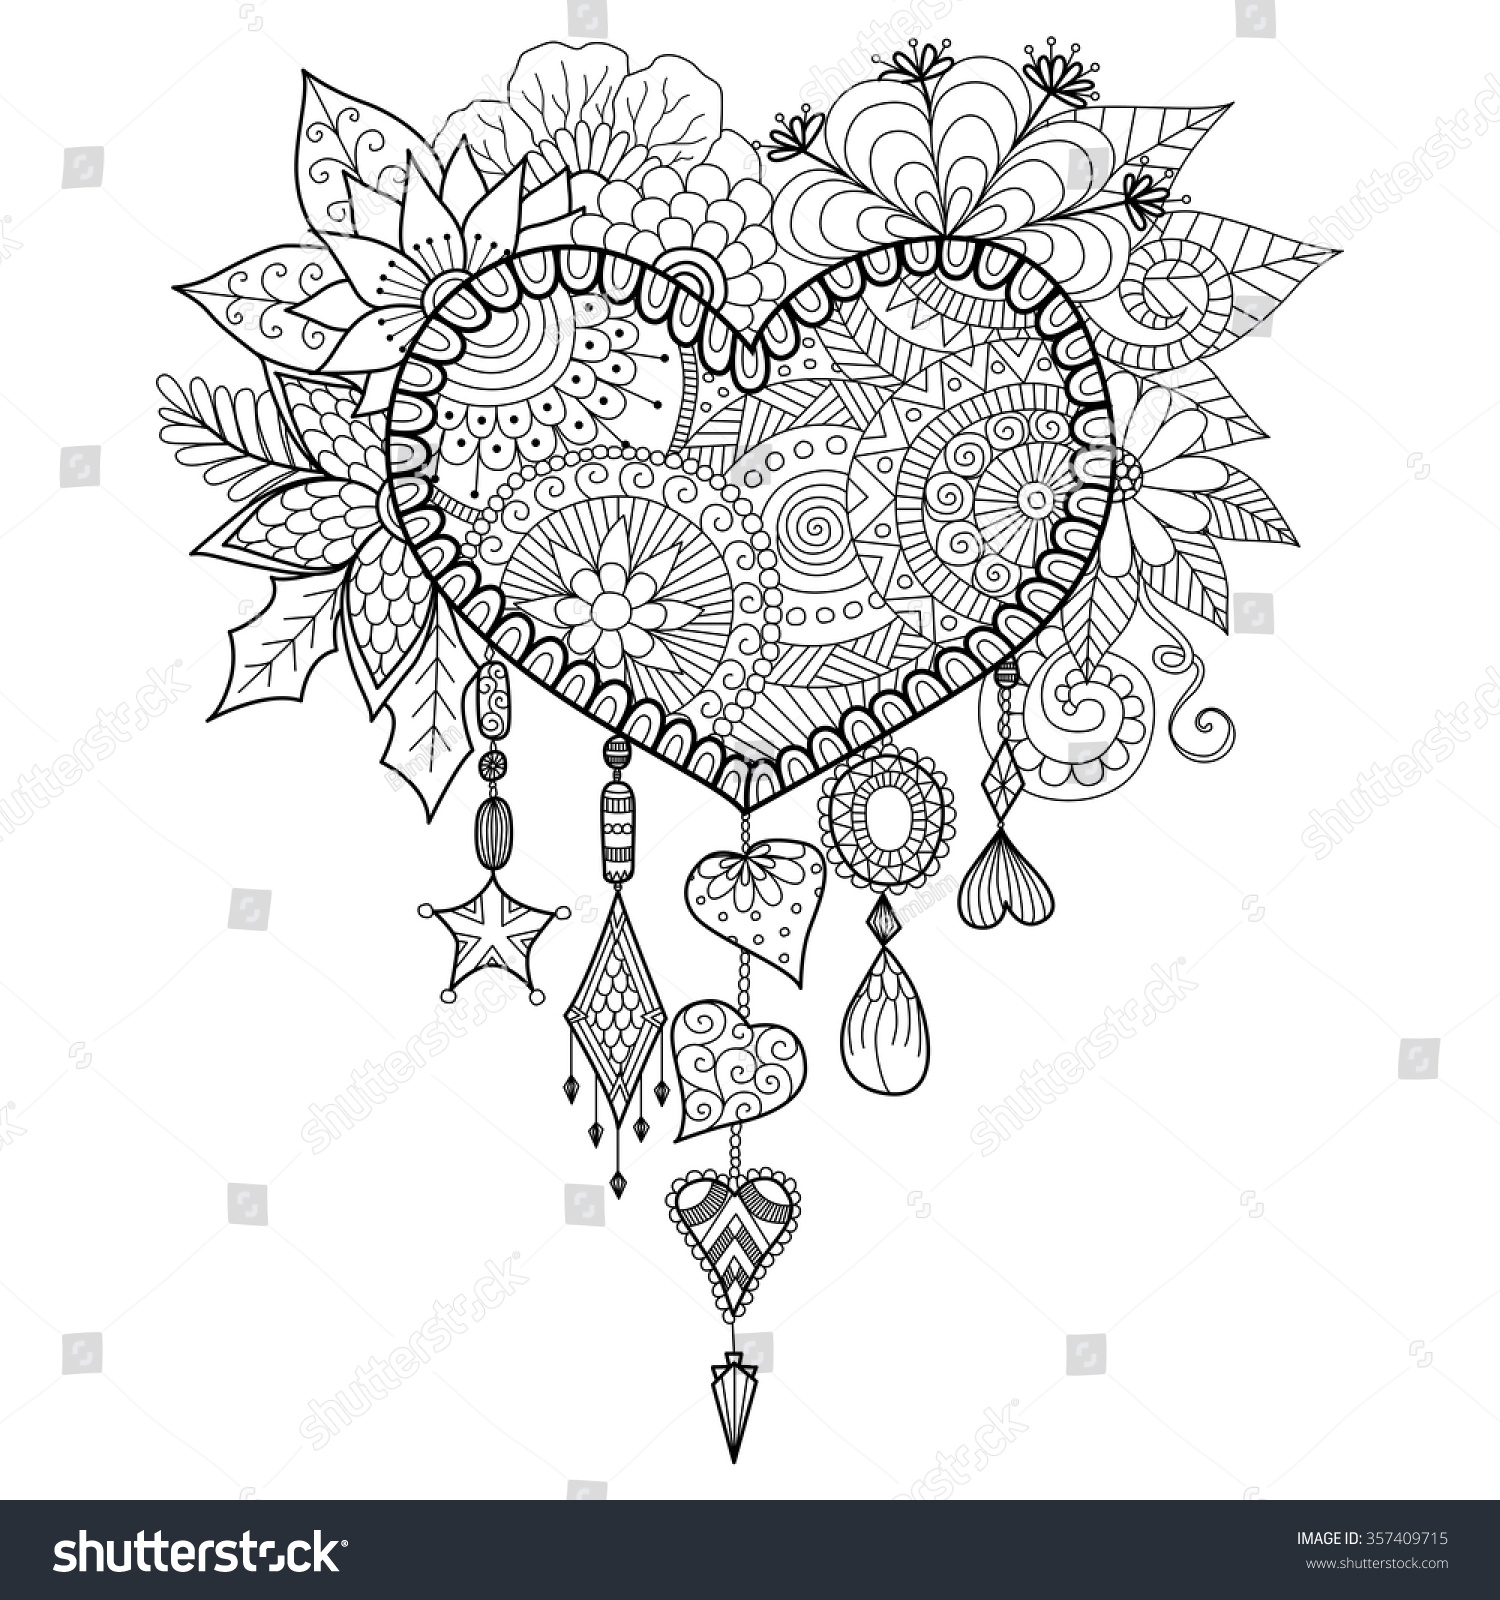 Coloring pages dream catchers -  Dream Catcher For Coloring Book For Adult Download